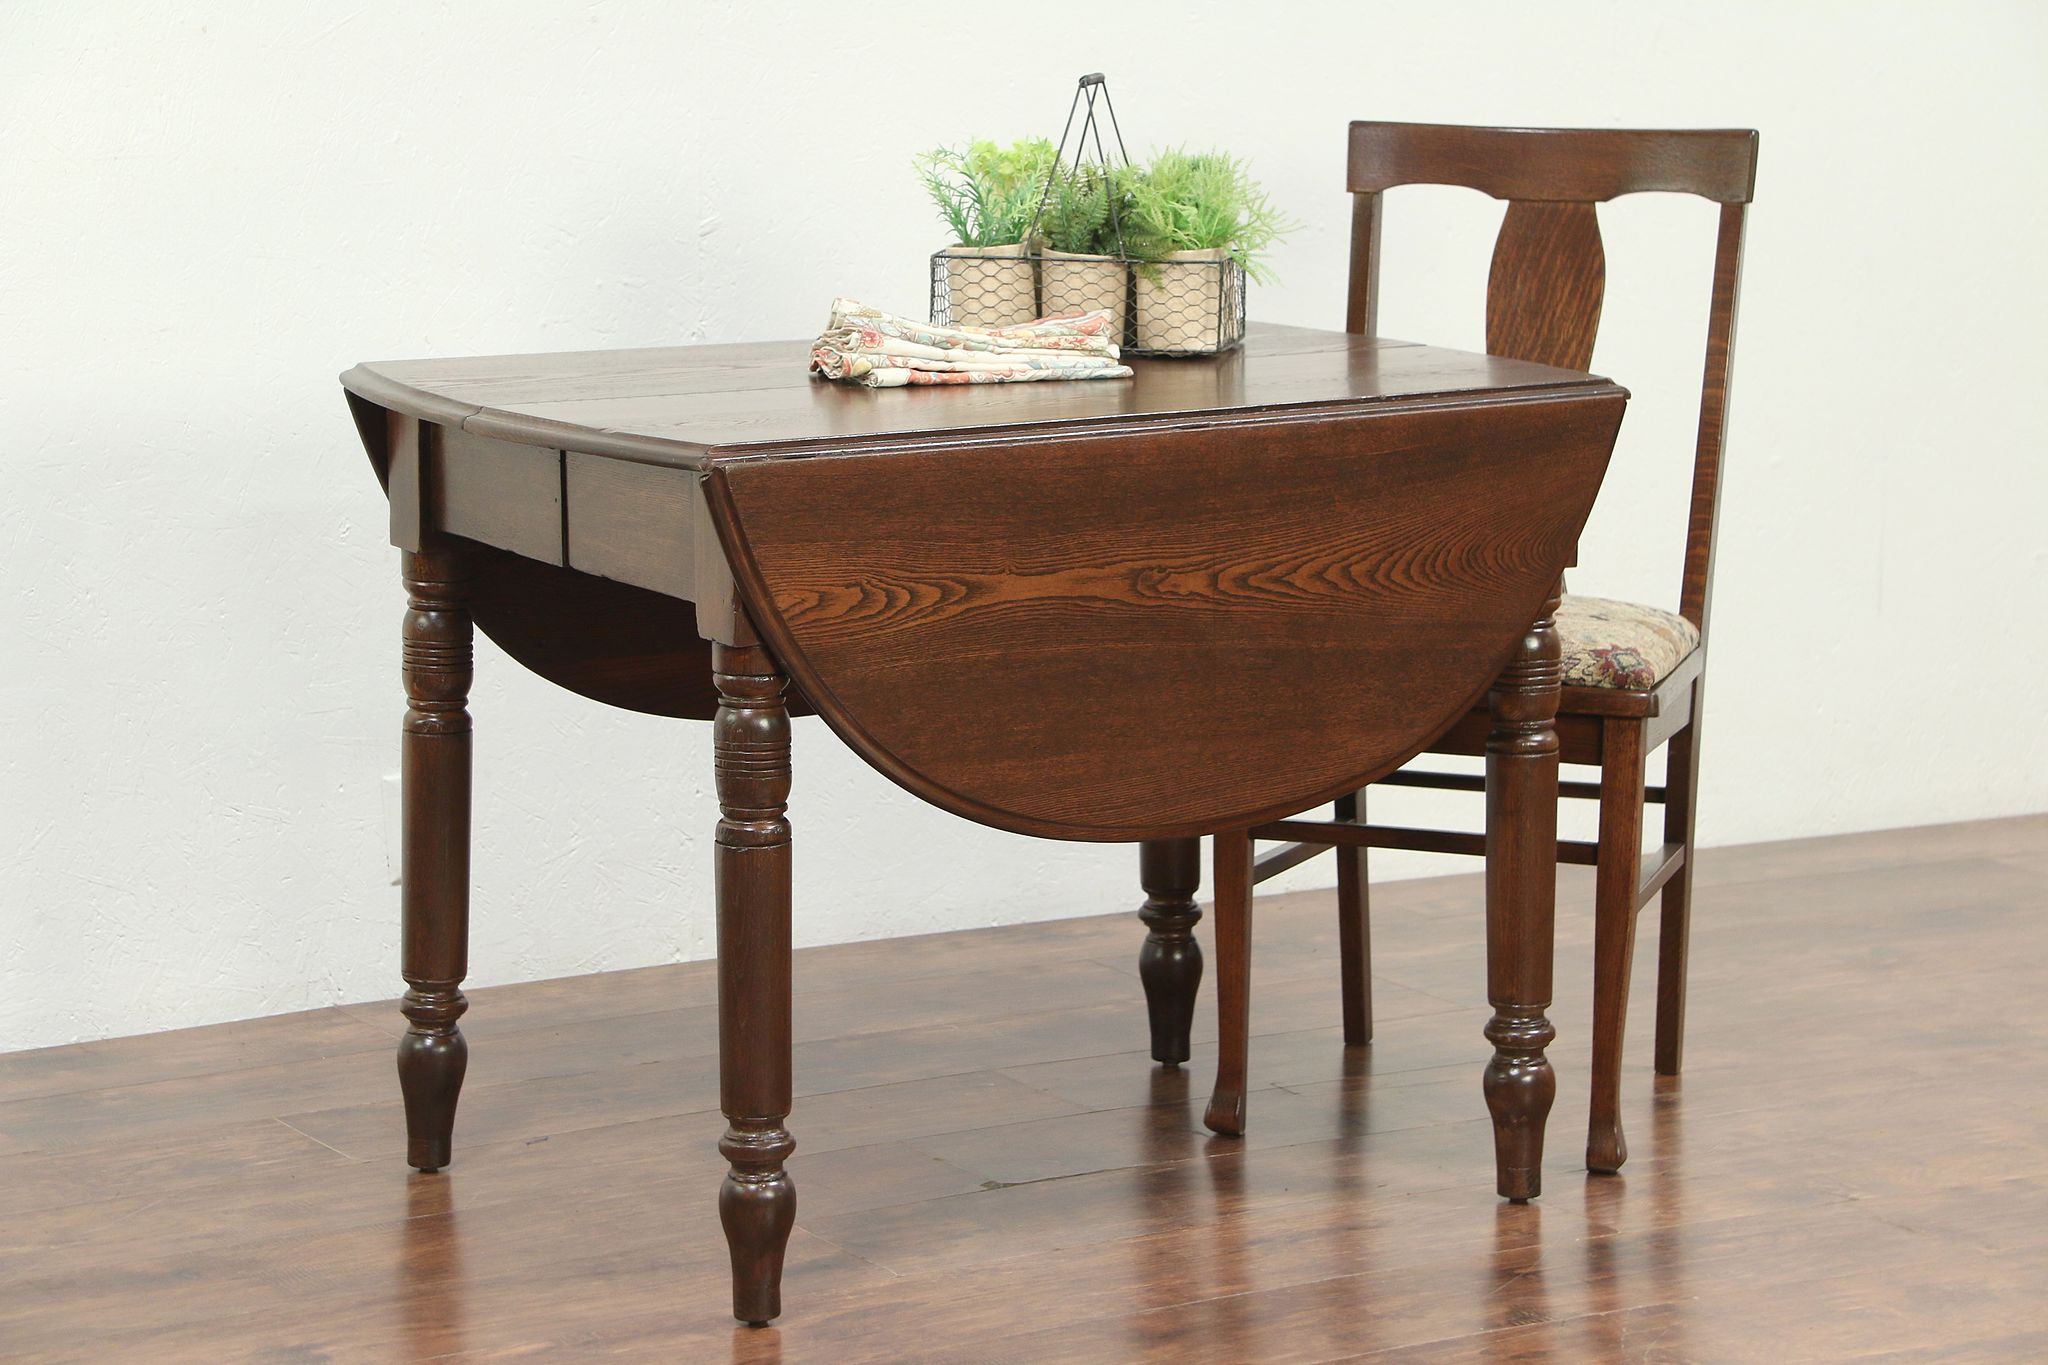 Sold Oak Oval Victorian Antique Dropleaf Dining Or Breakfast Table 2 Leaves 28942 Harp Gallery Antiques Furniture